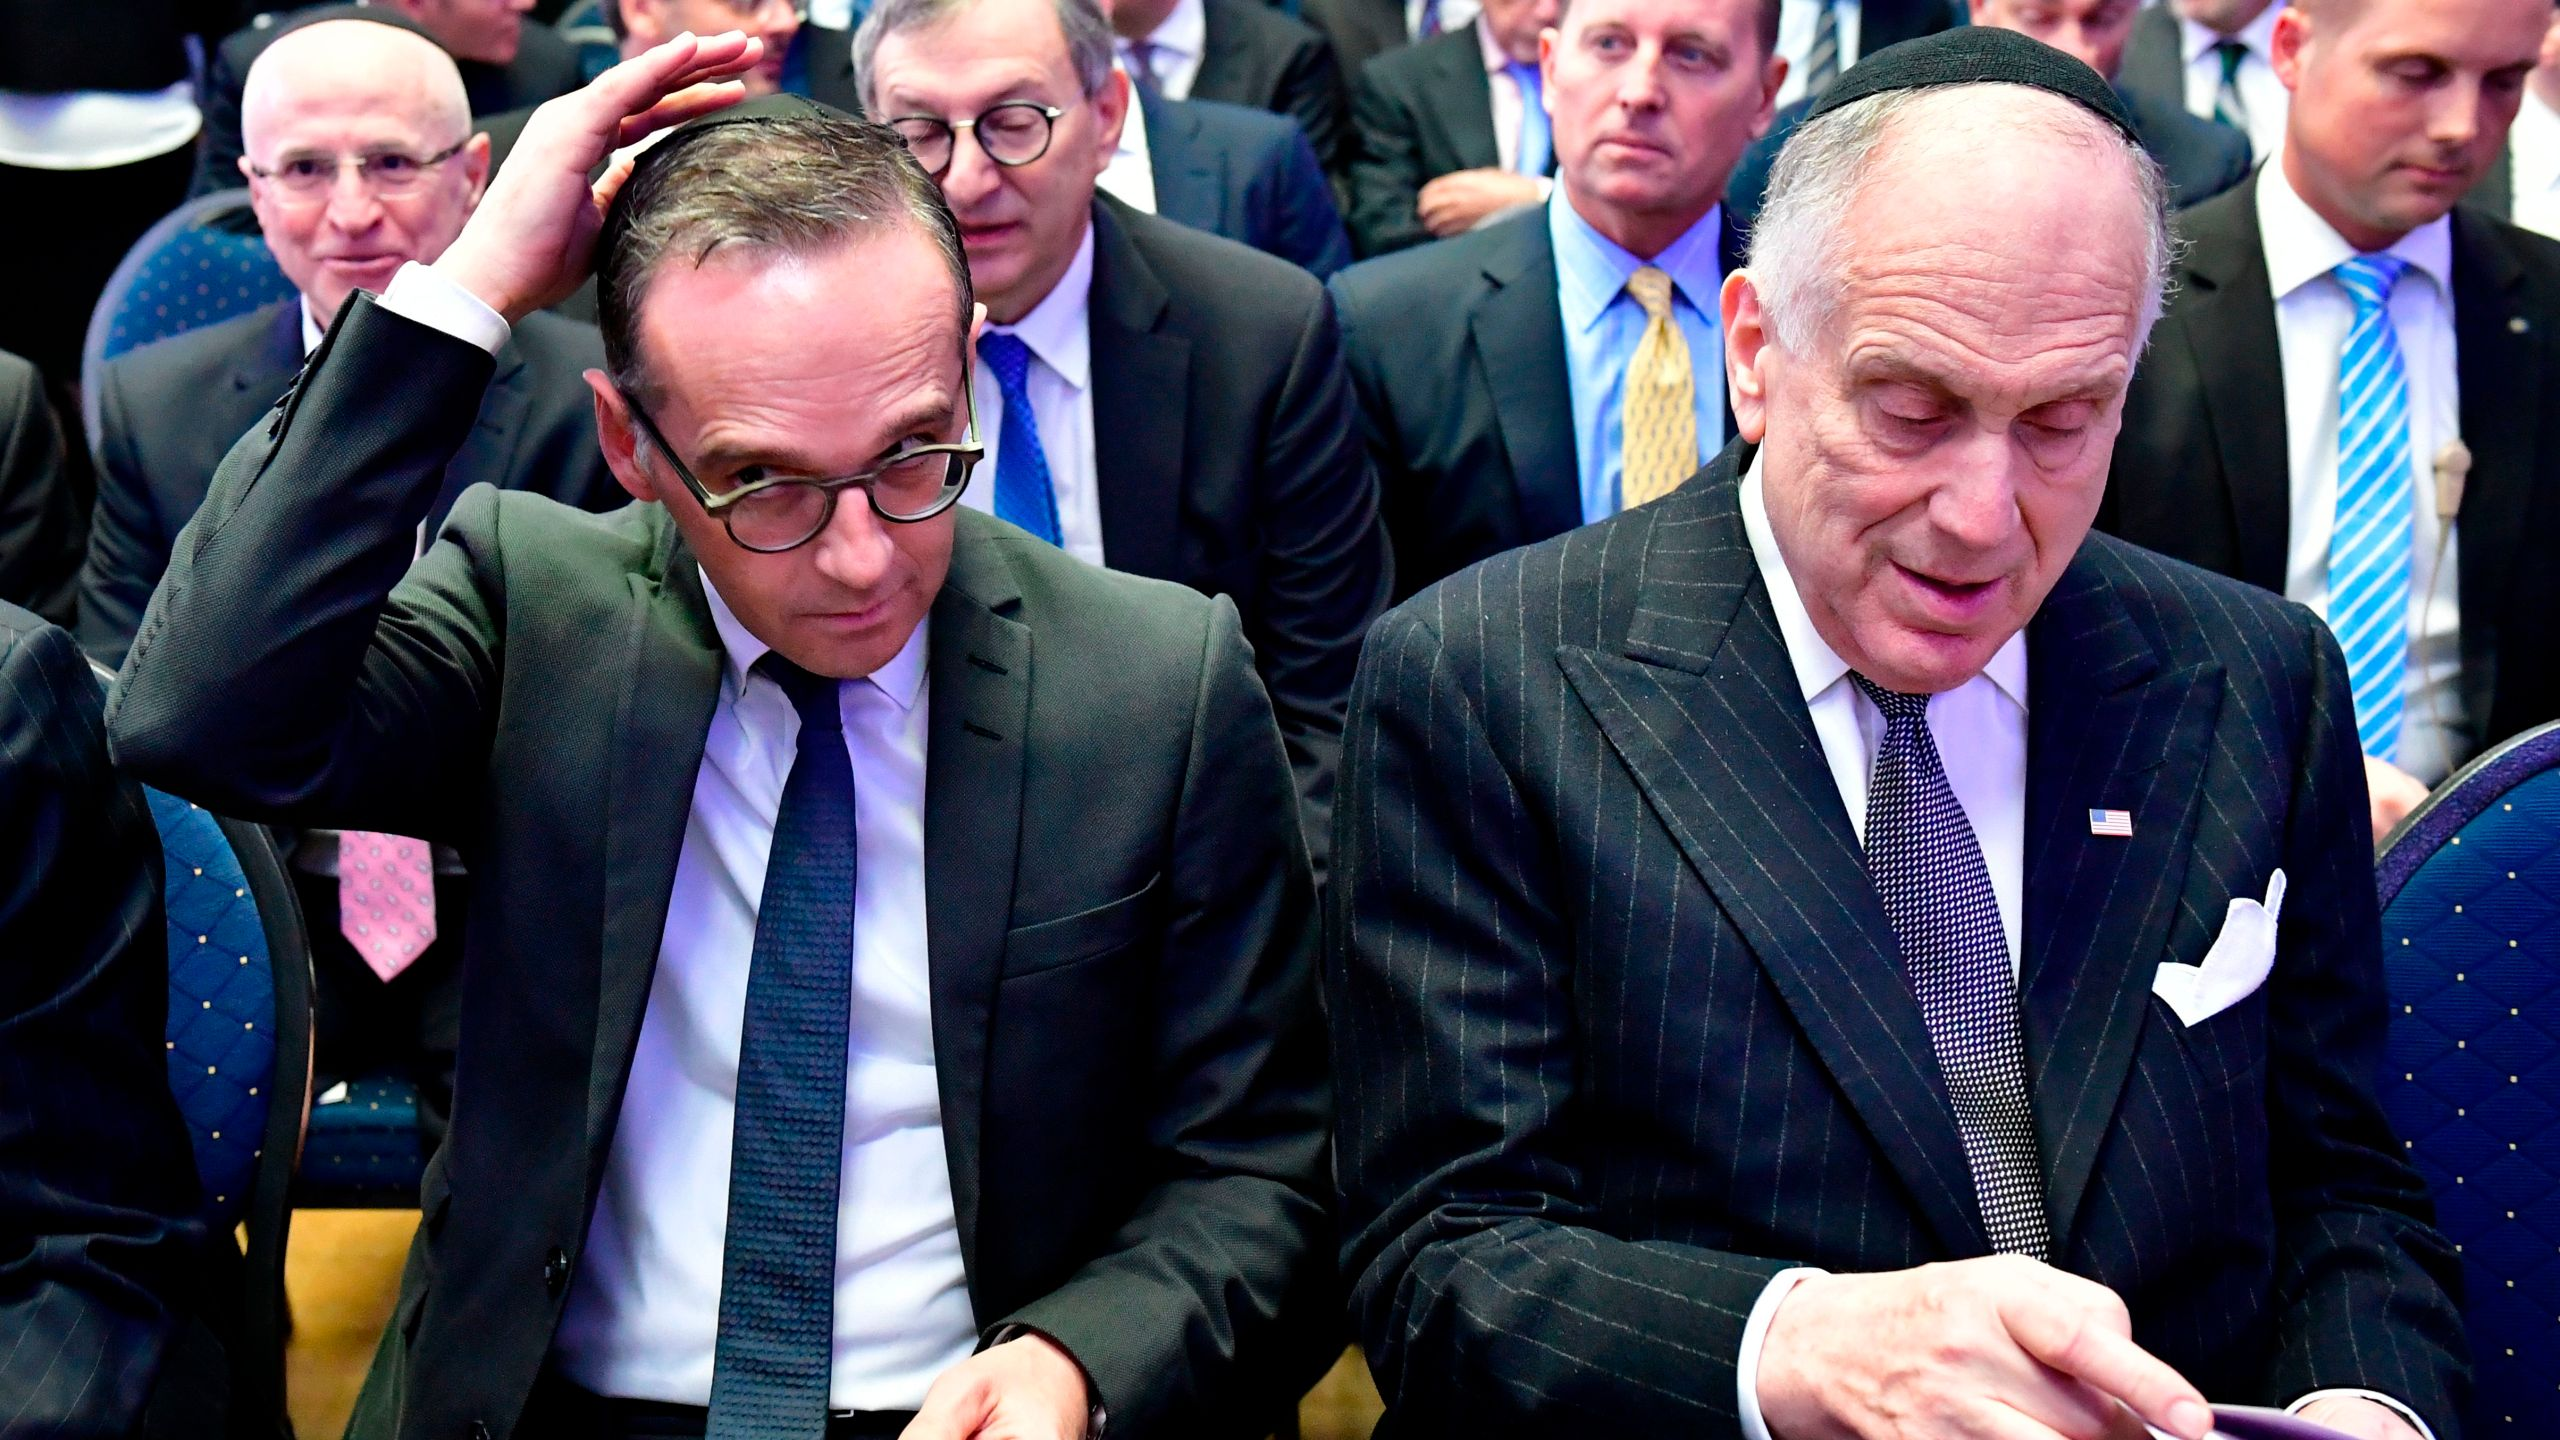 Foreign minister Heiko Maas (L) adjusts his Jewish kippa skullcap next to the President of the World Jewish Congress Ronald Lauder prior the solemn ordination ceremony of three rabbis and three cantors at the Bet Zion synagogue in Berlin, Germany, on Oct. 8, 2018. (Credit: Tobias SCHWARZ / AFP) /Getty Images)